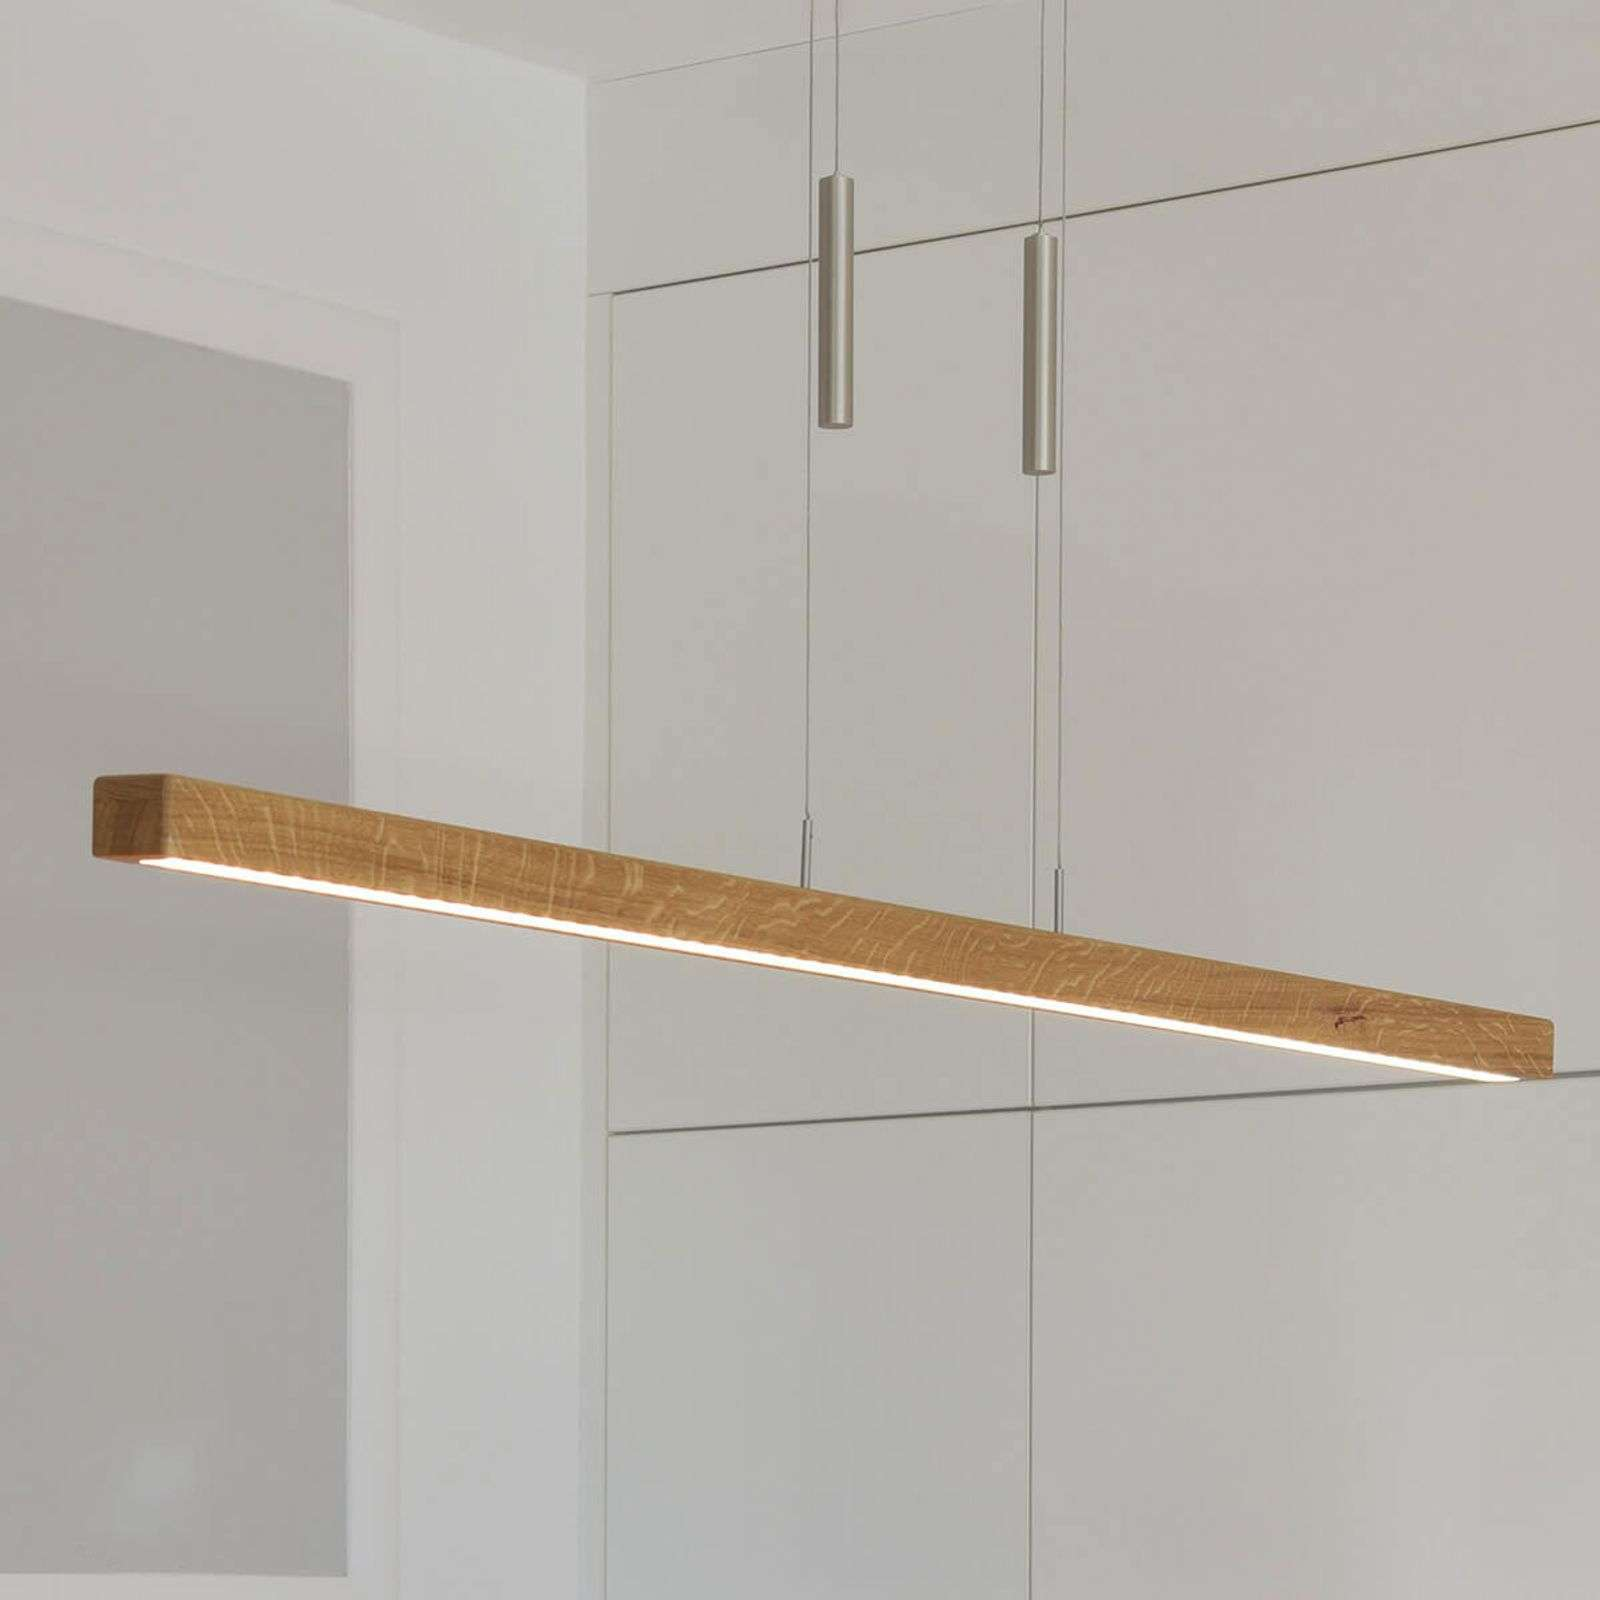 Suspension LED Leonora dimmable en bois massif